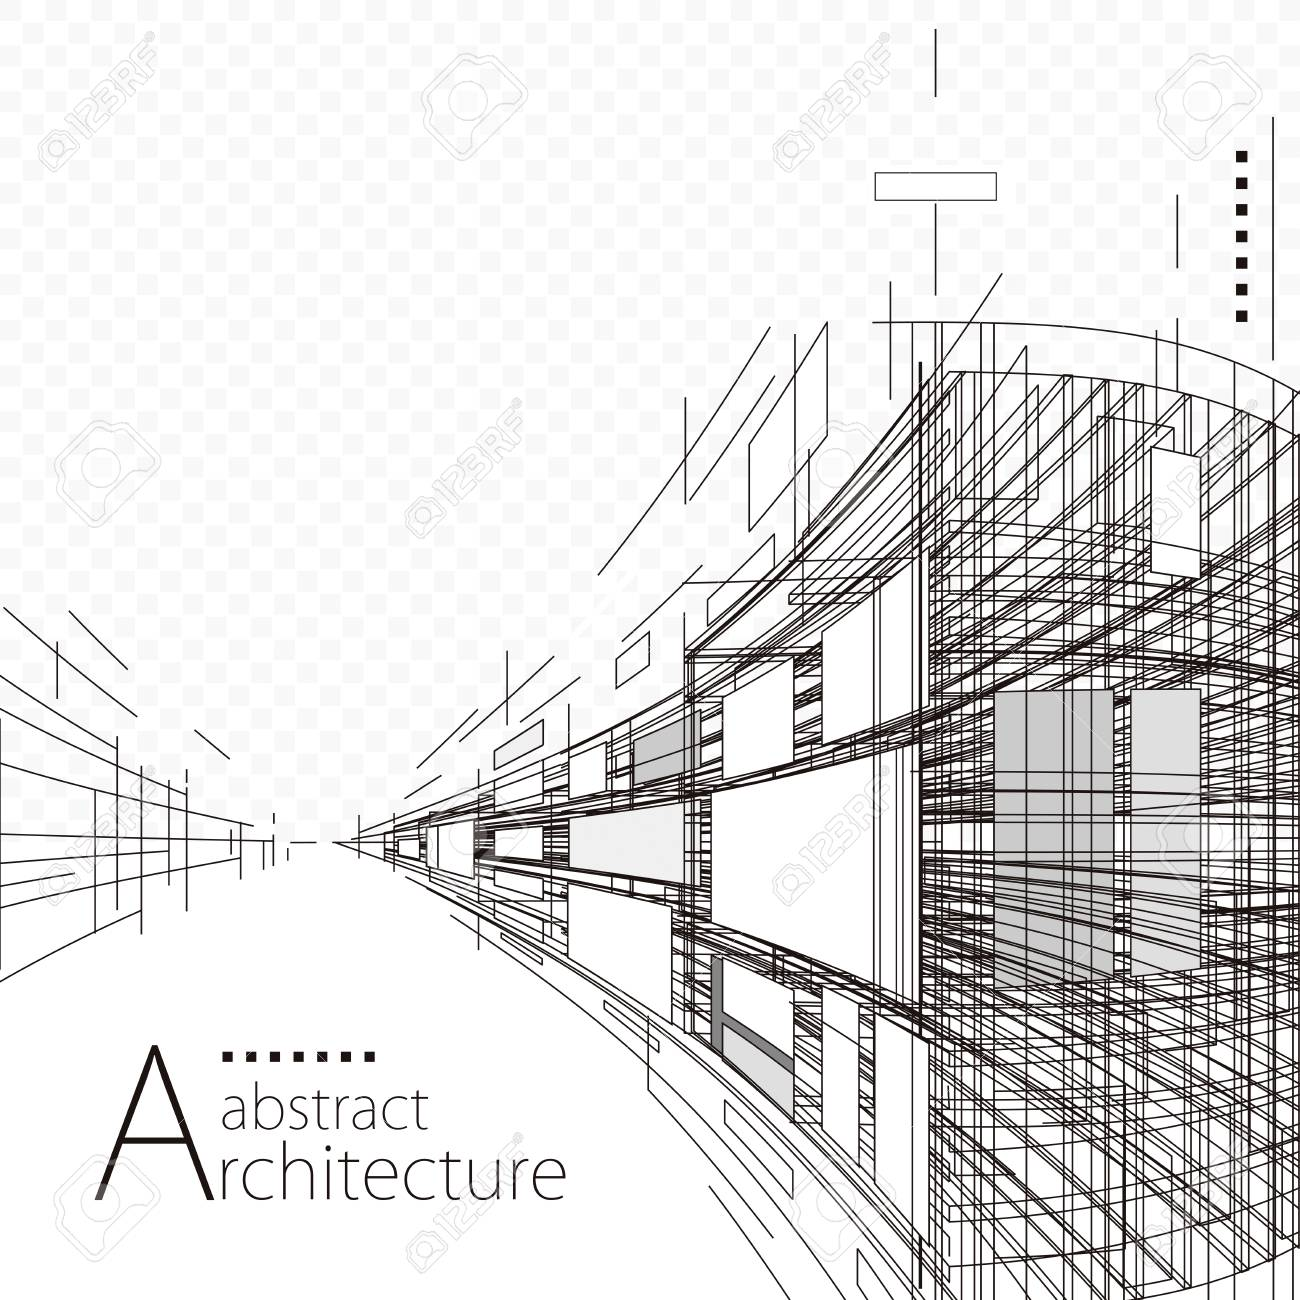 Architecture construction perspective designing black and white abstract background. - 92708576